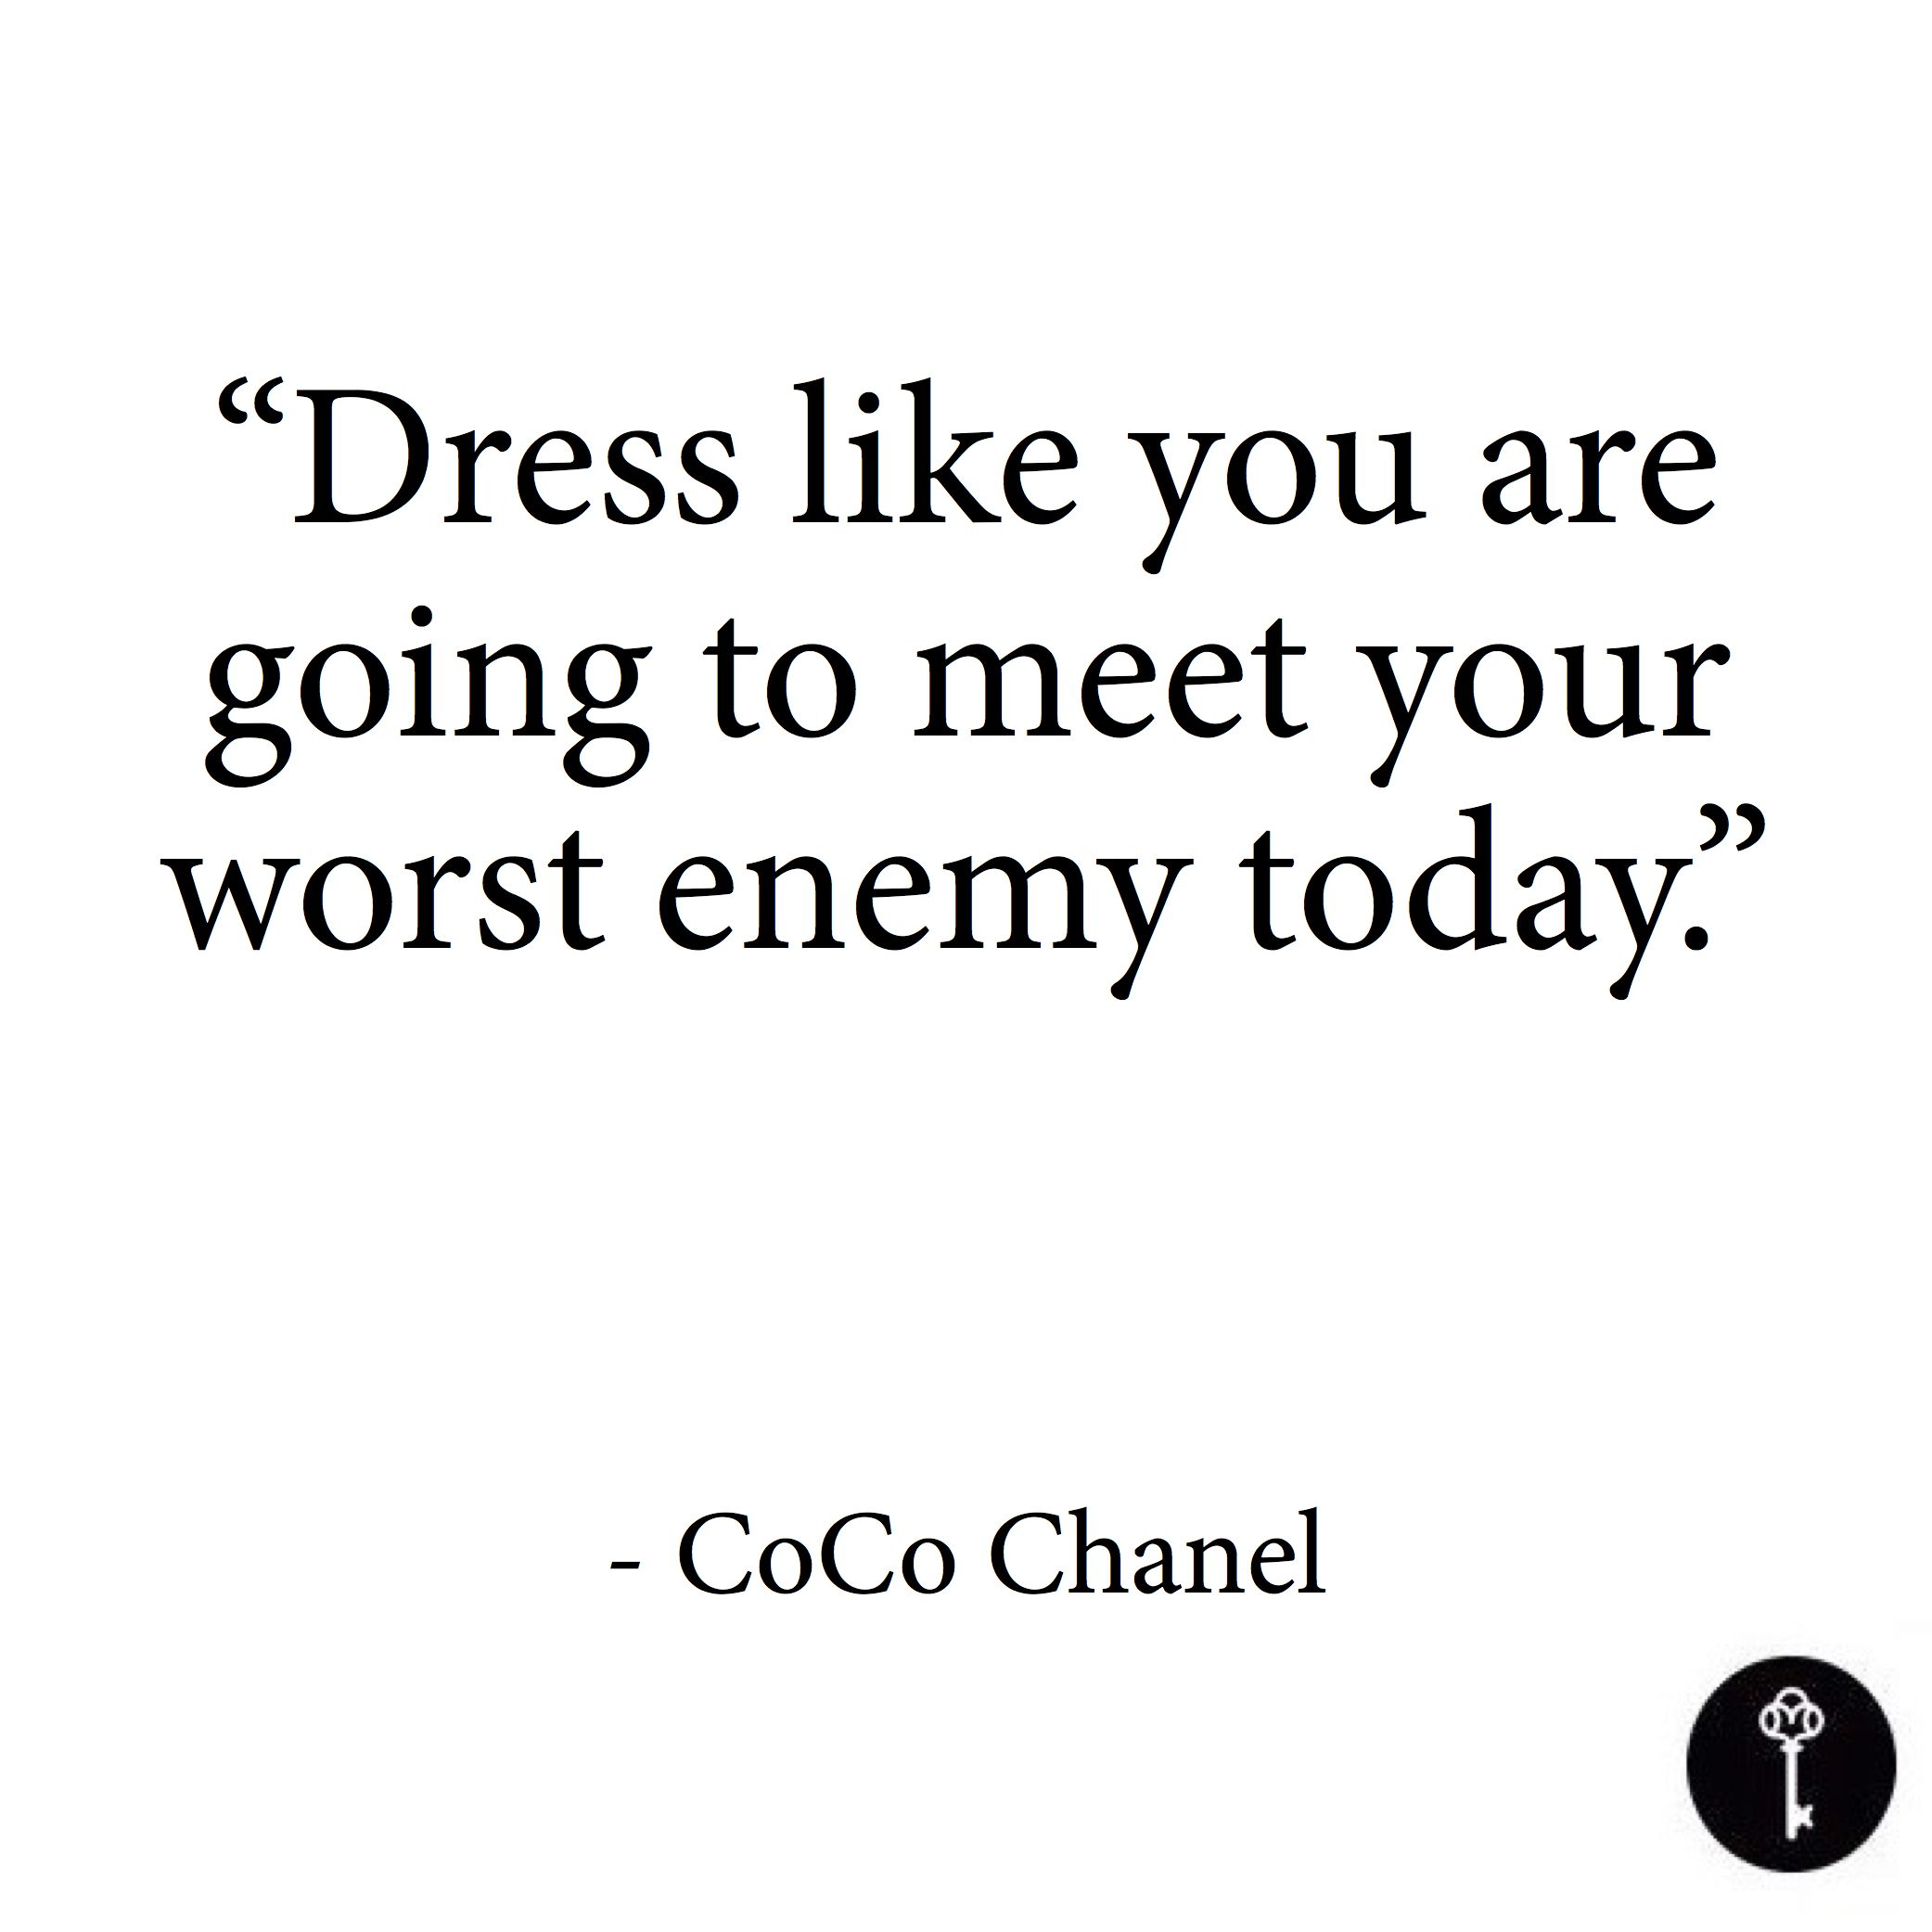 Black dress quotes pinterest - Coco Chanel Quote On Fashion Dress Like You Are Going To Meet Your Worst Enemy